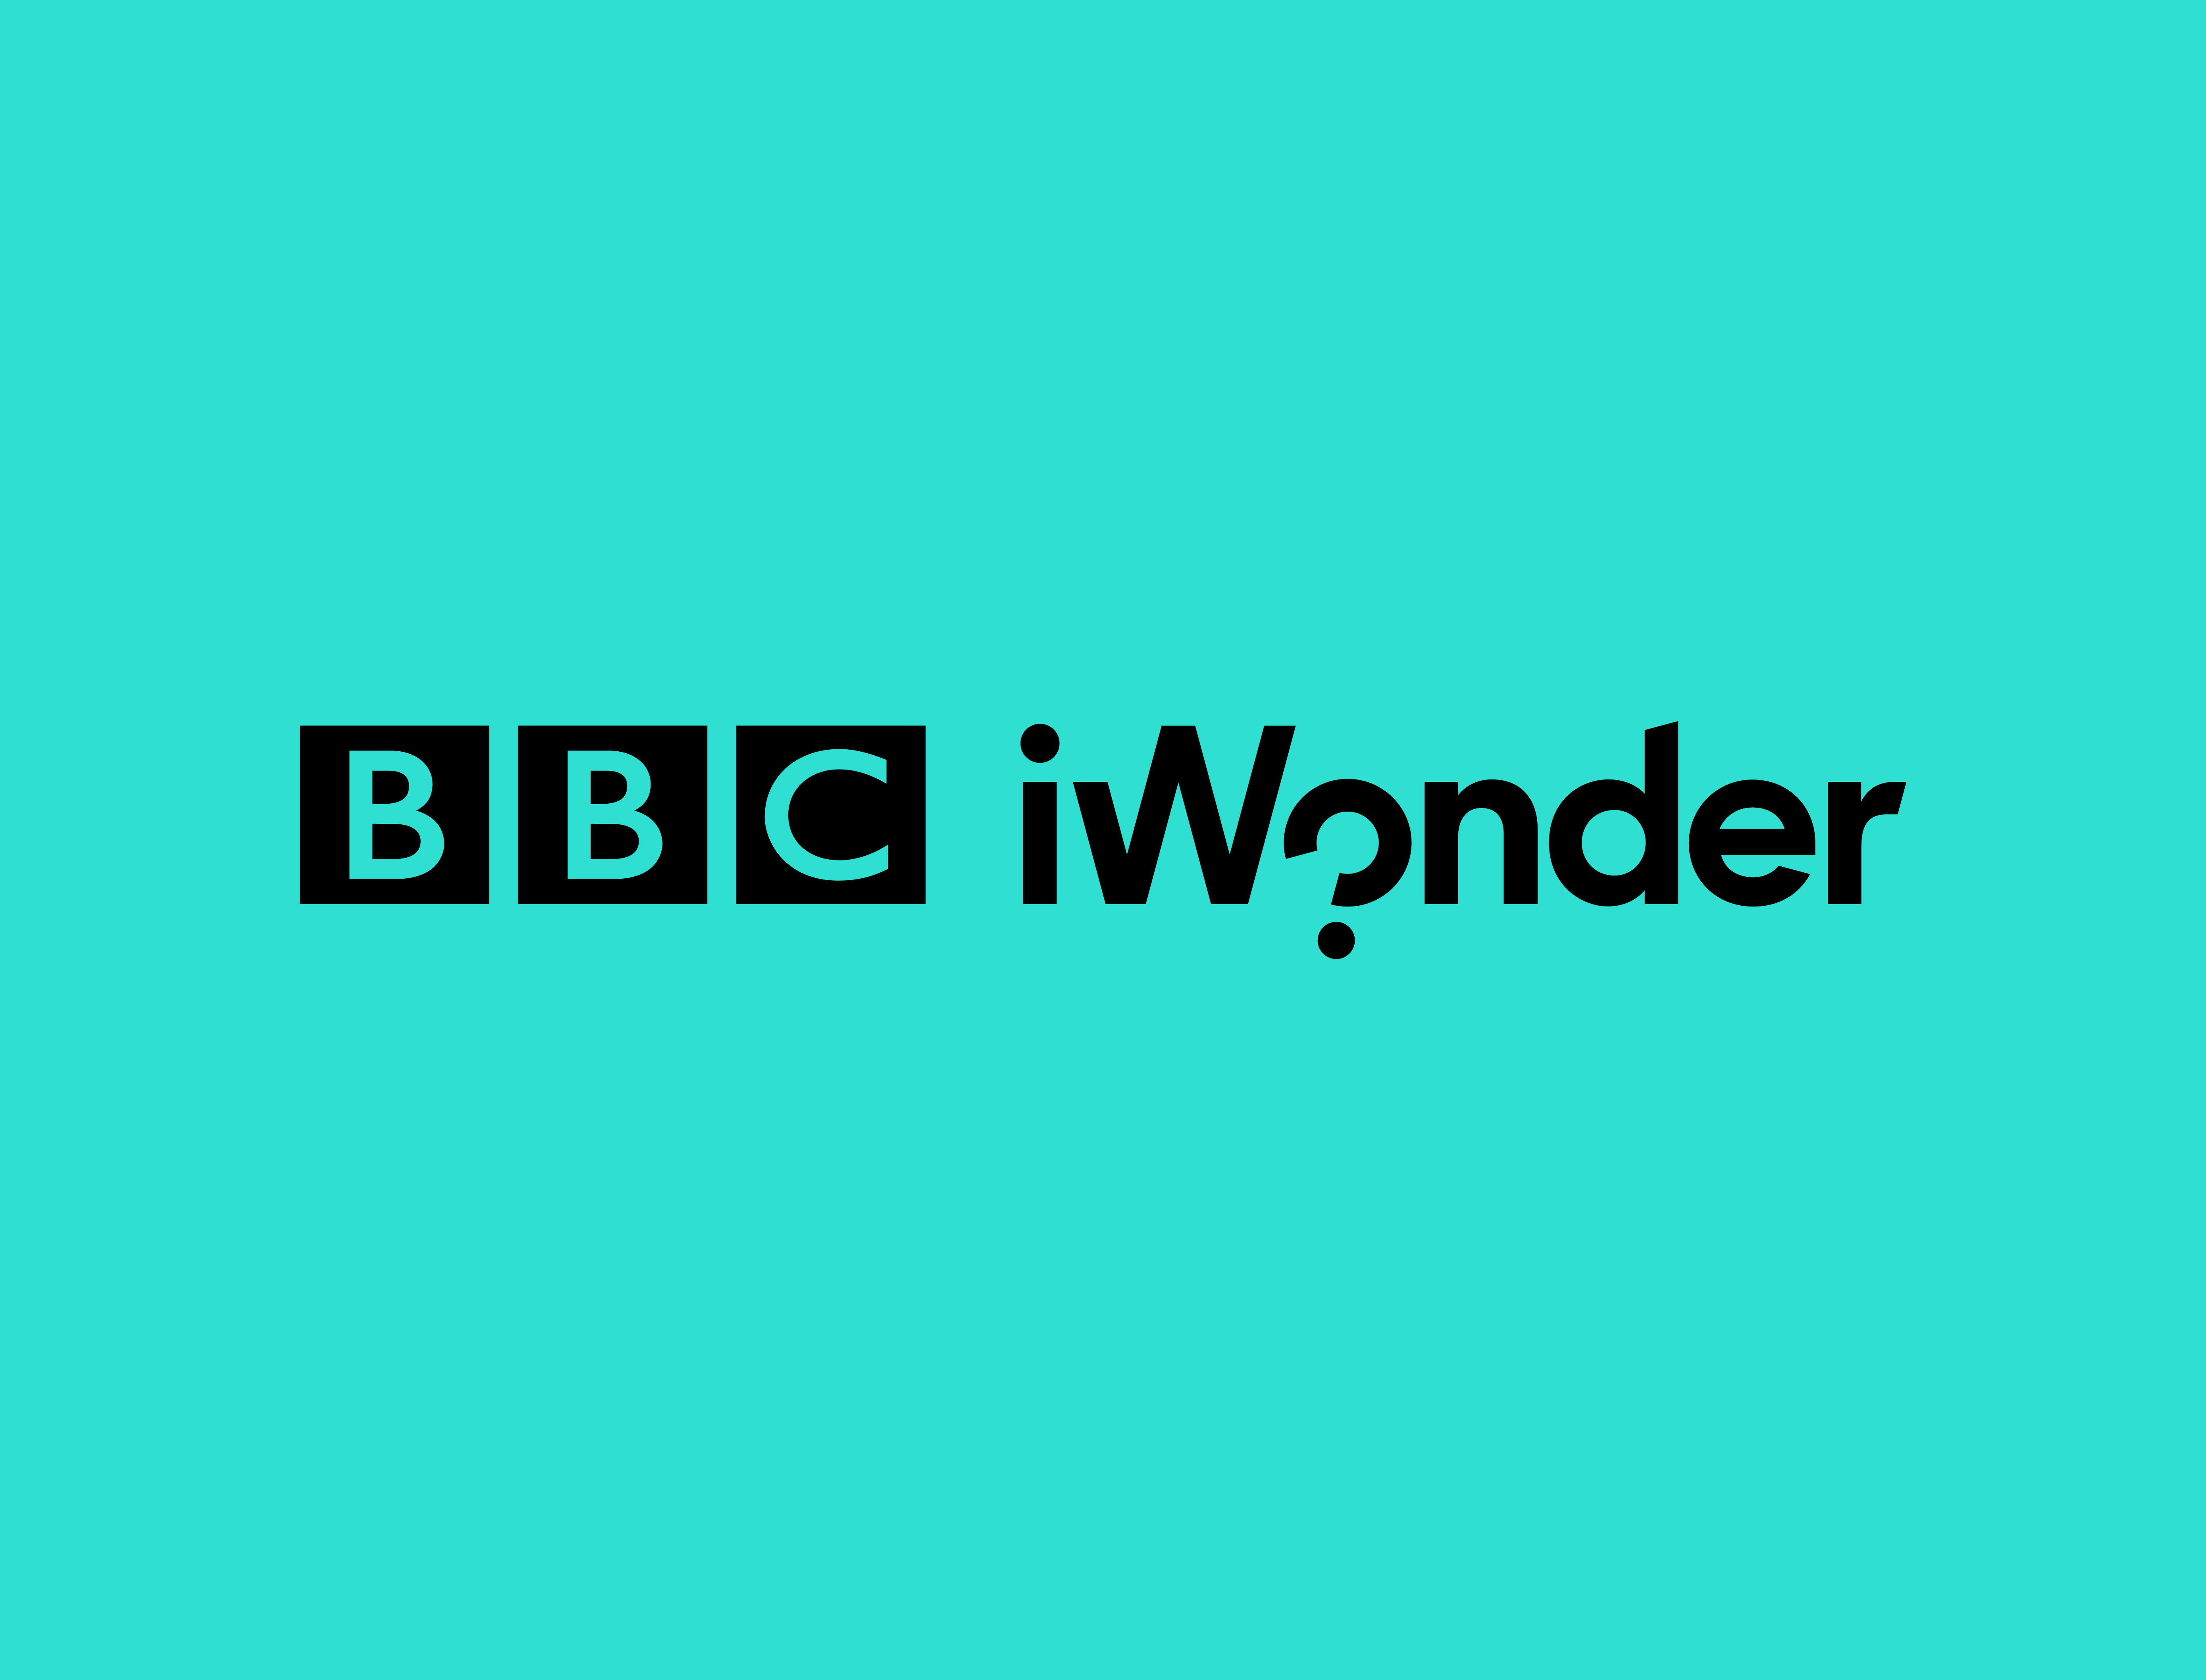 Studio Output brands the BBC's new iWonder of the world